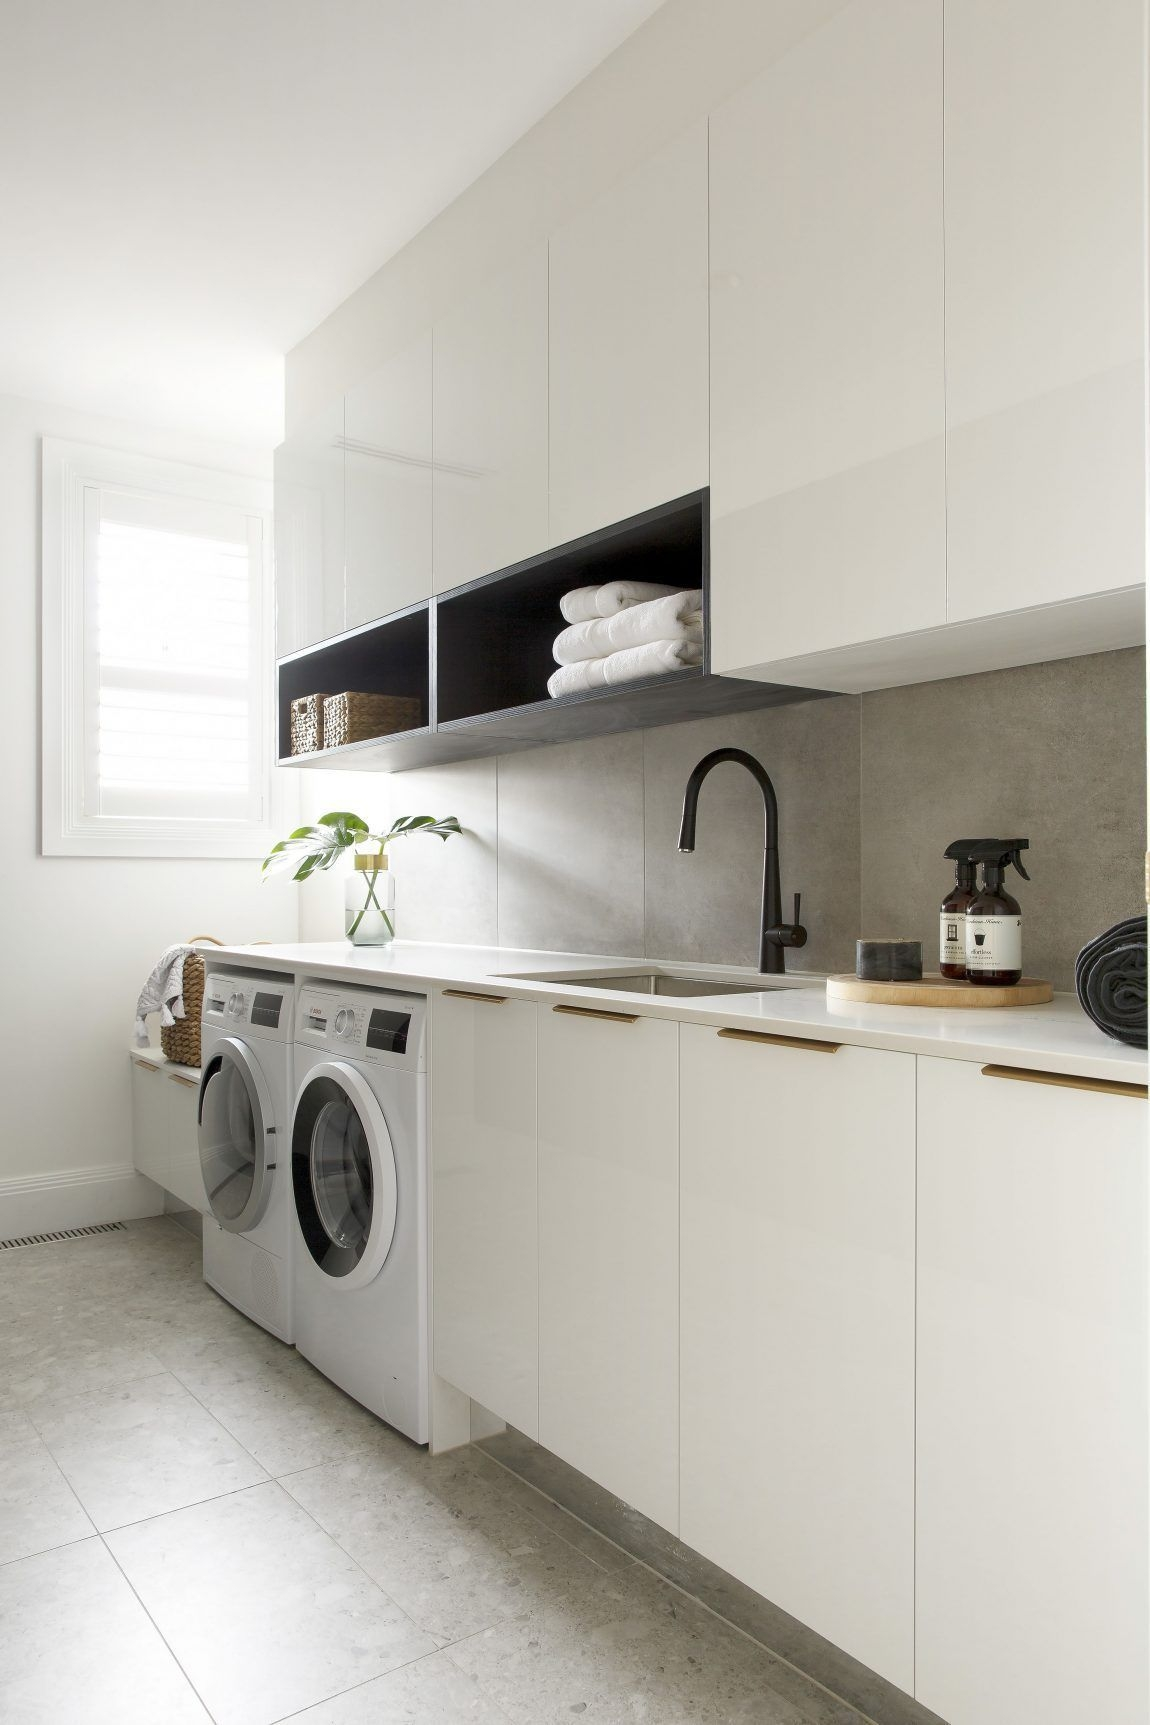 Best Laundry Room Design Ideas To Try This Season13